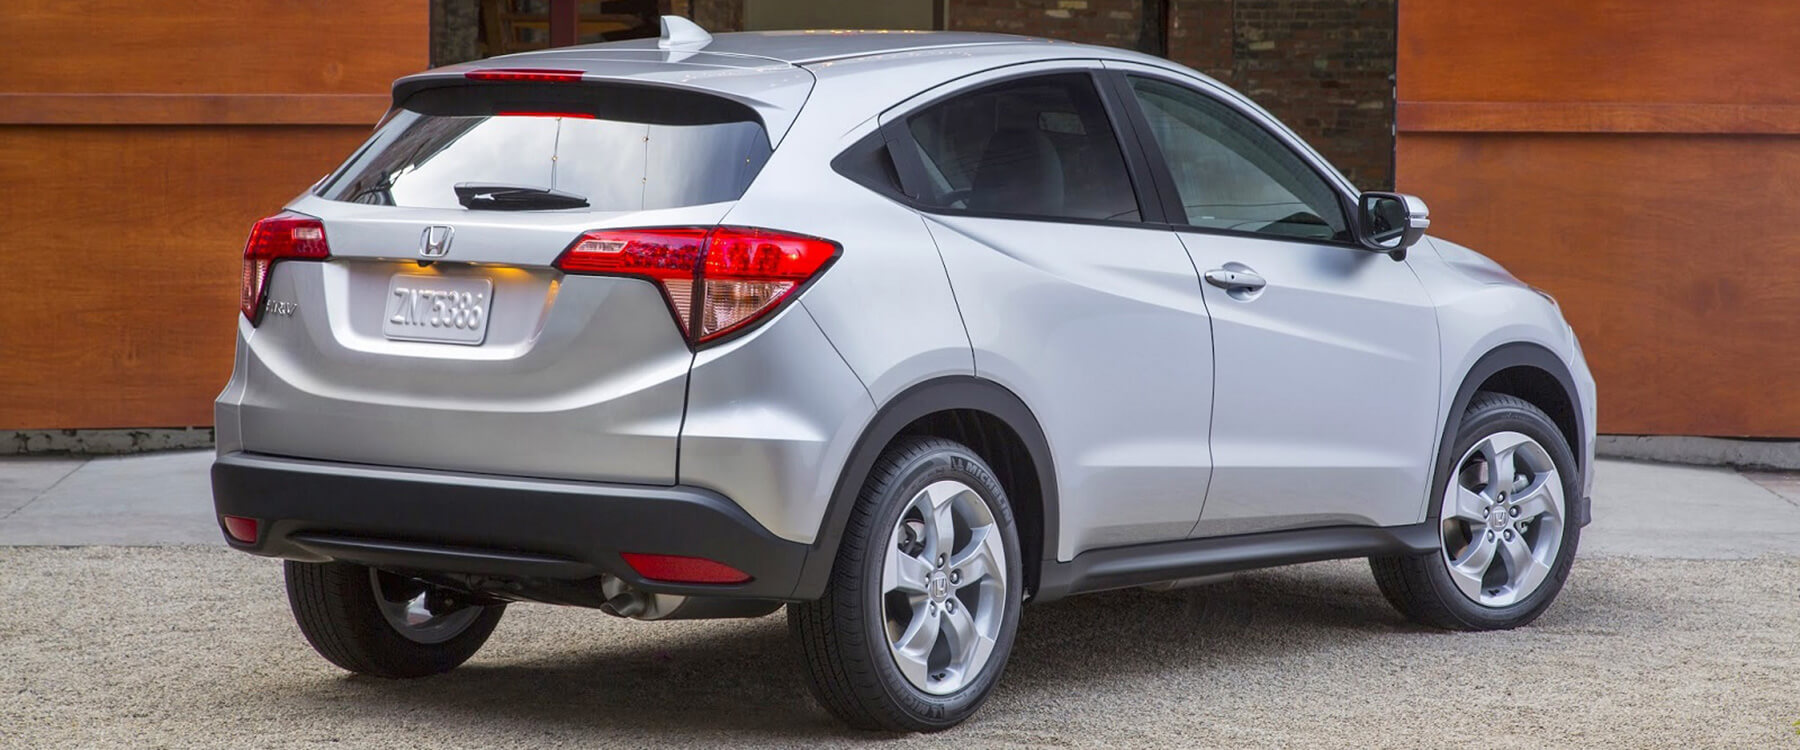 Honda offers two affordable suvs for driver 39 s needs for Keeler honda service